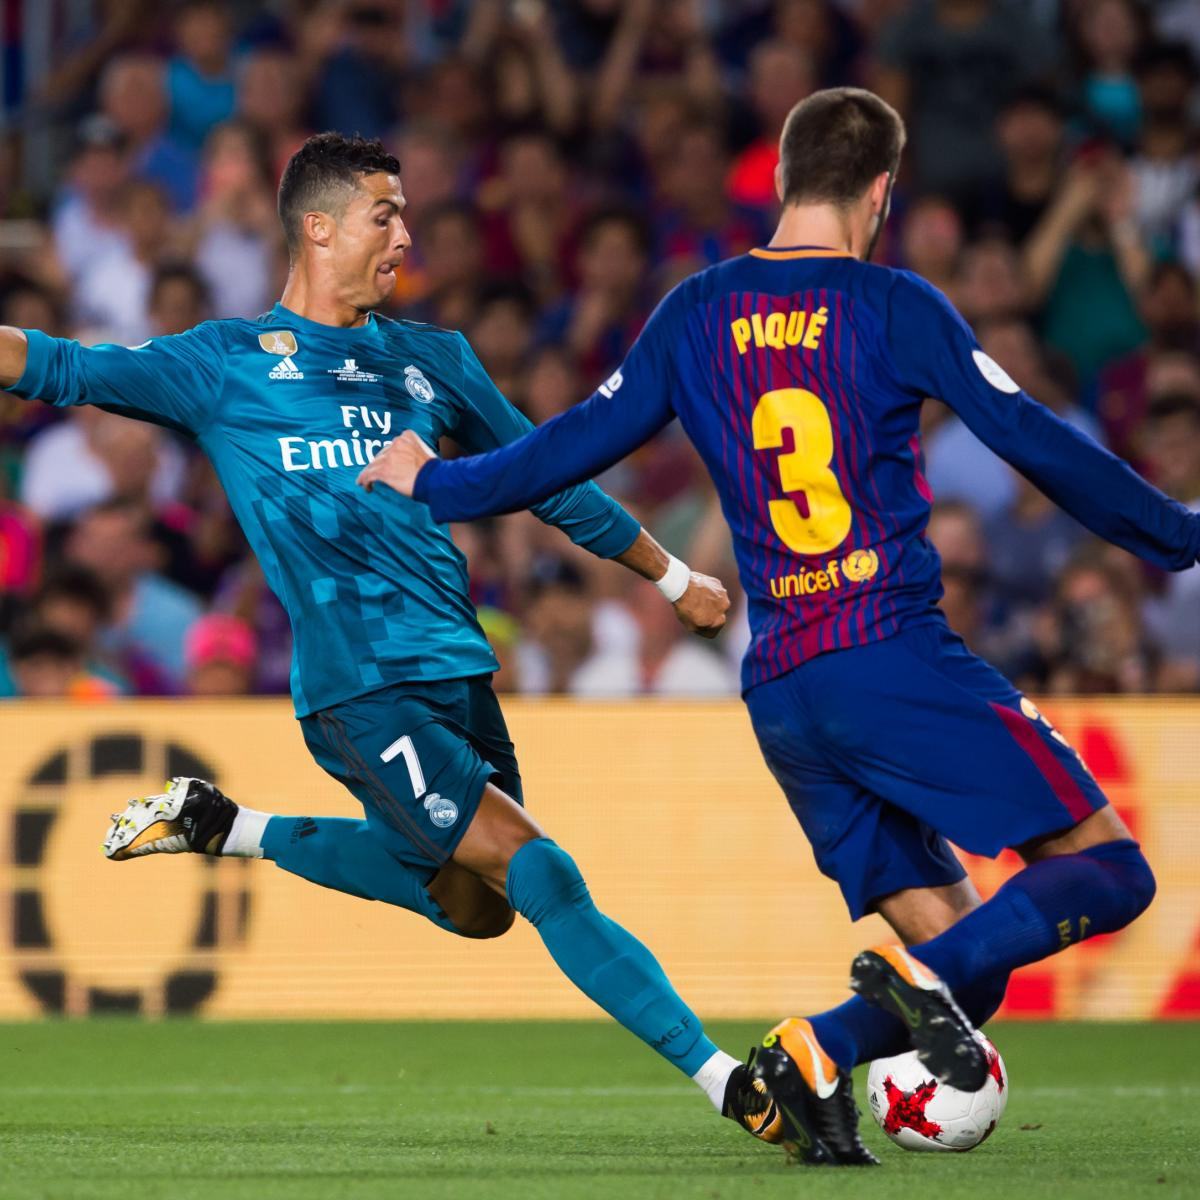 Keylor navas pays tribute to cristiano ronaldo sports mole - Cristiano Ronaldo Sent Off Real Madrid Top Barcelona In Super Cup 1st Leg Bleacher Report